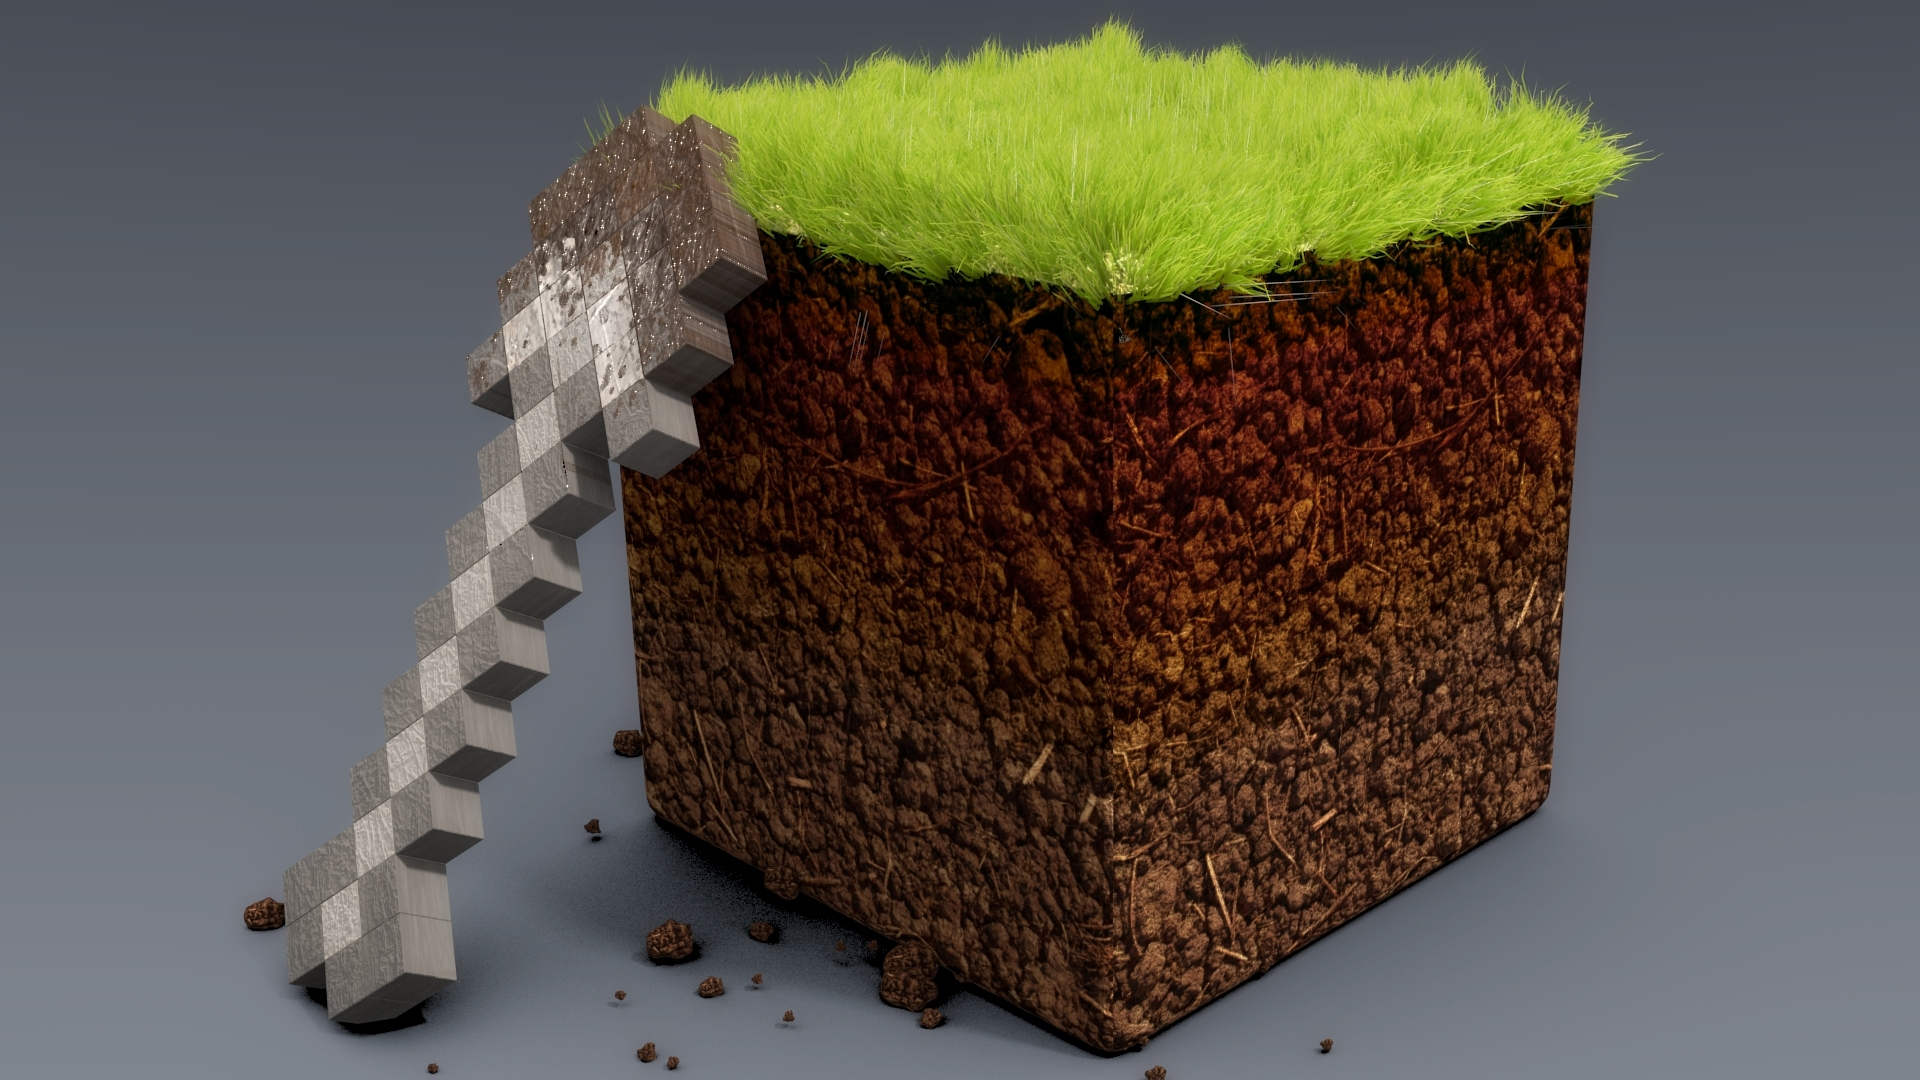 Top Wallpaper Minecraft 1080p - minecraft_ground_grass_cube_21185_1920x1080  Best Photo Reference_906774.jpg